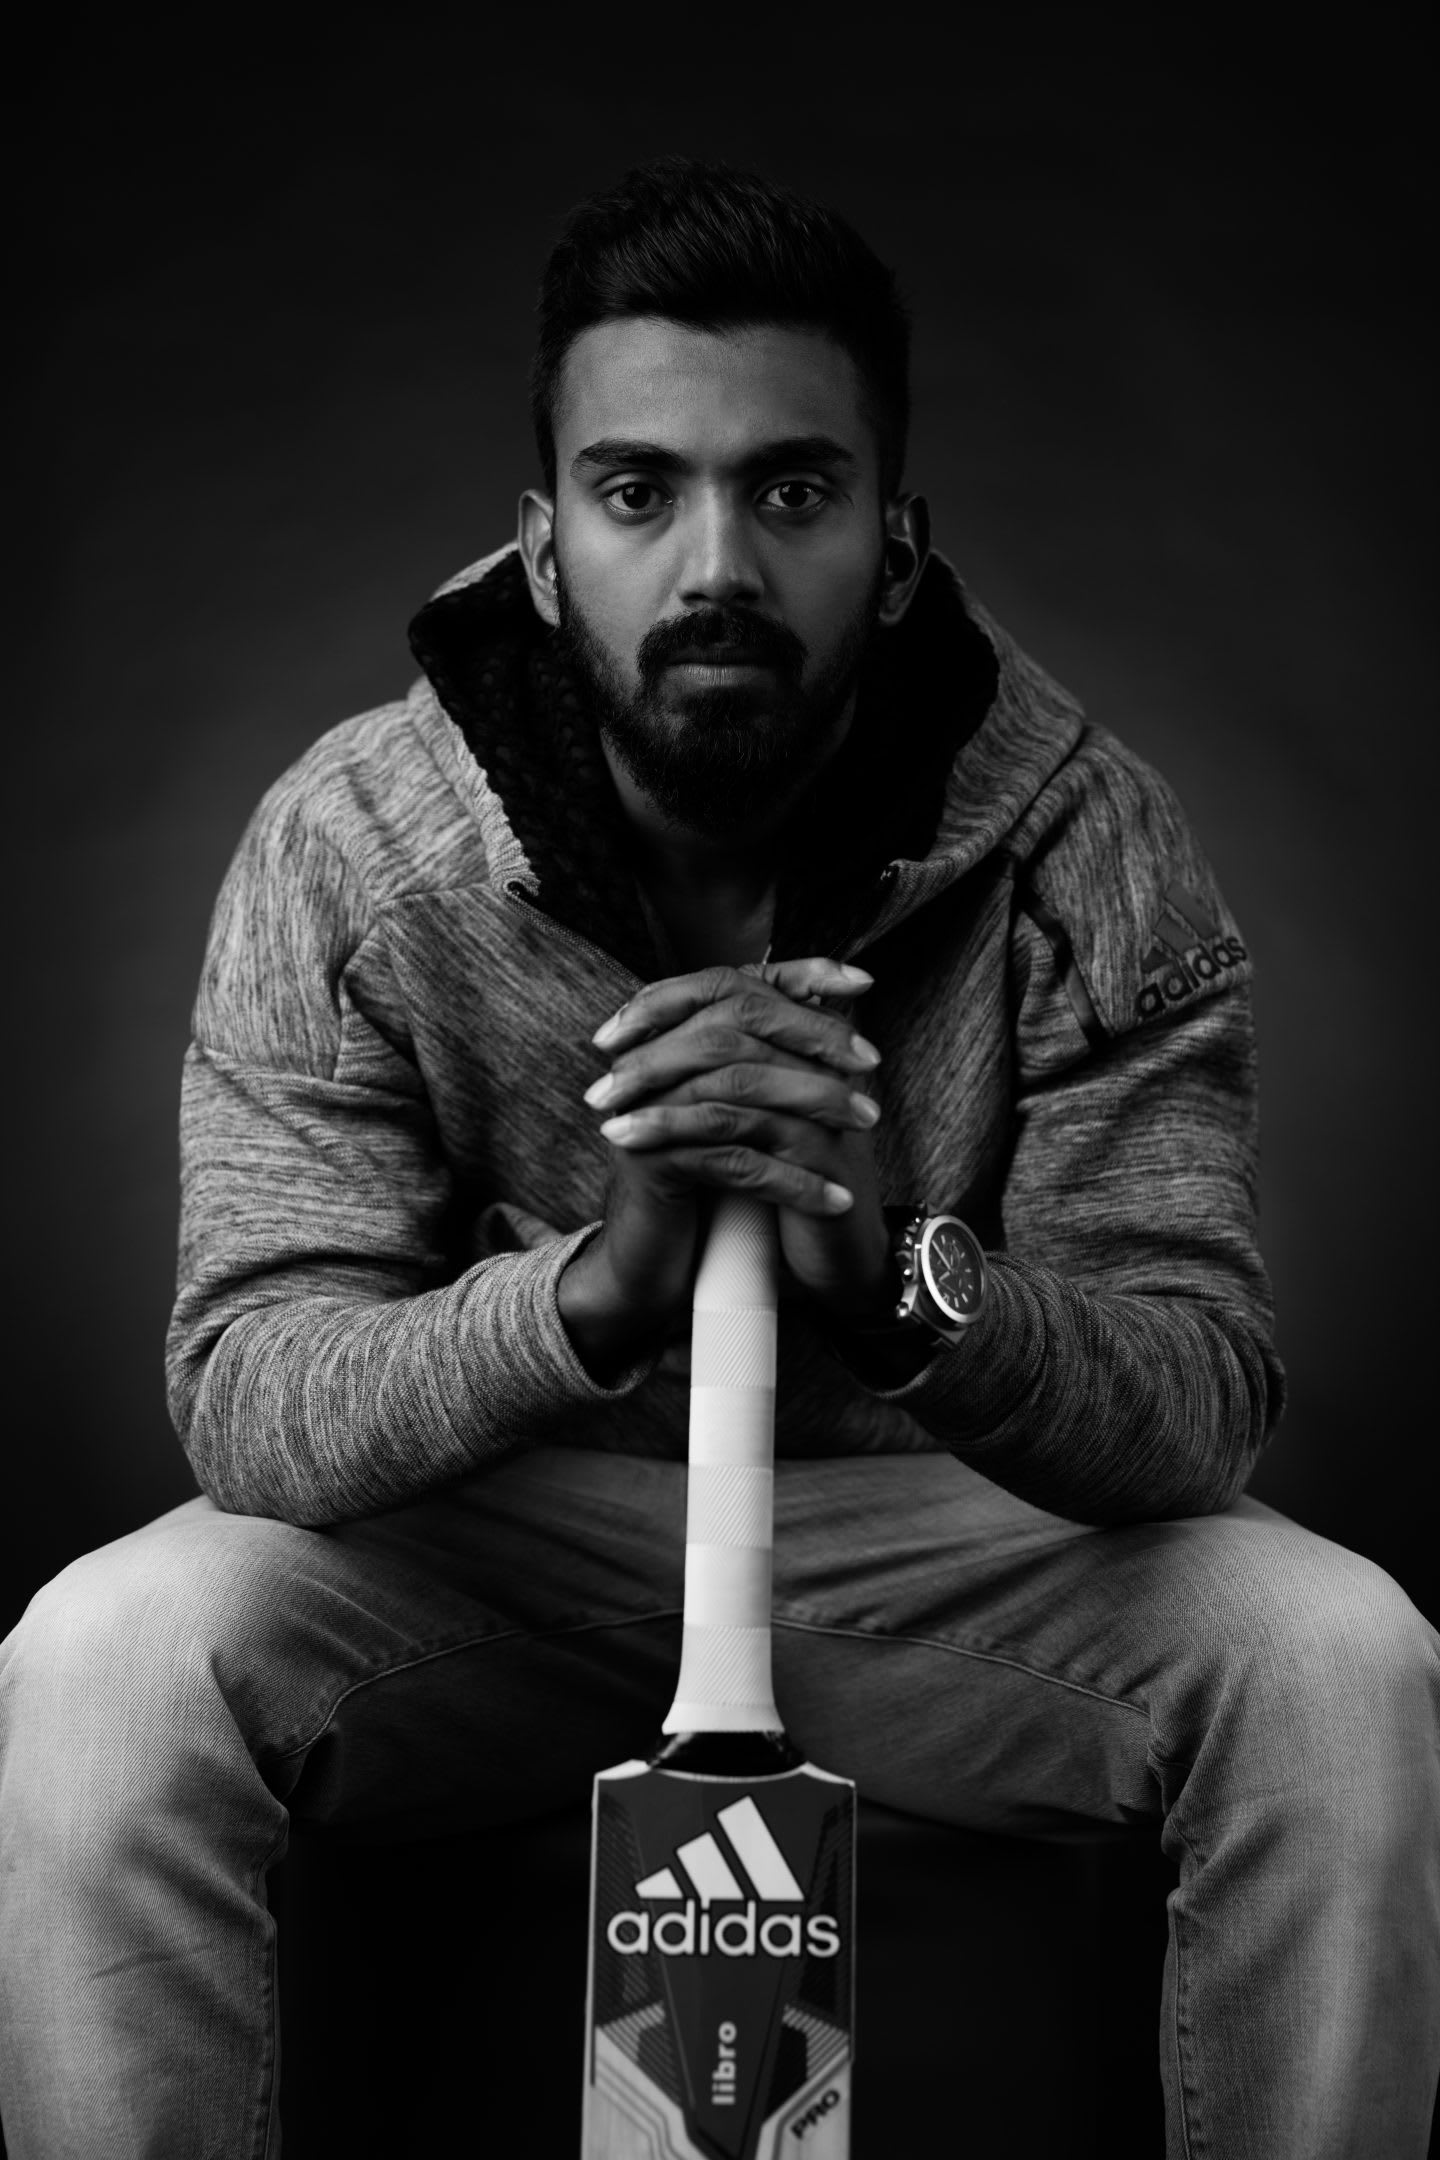 Black and white photo of Indian cricket player K.L. Rahul sitting and holding his racket, adidas-cricket-K.L.-Rahul-mindset-business-concentration-What's-Your-Gameplan, adidas, cricket, India